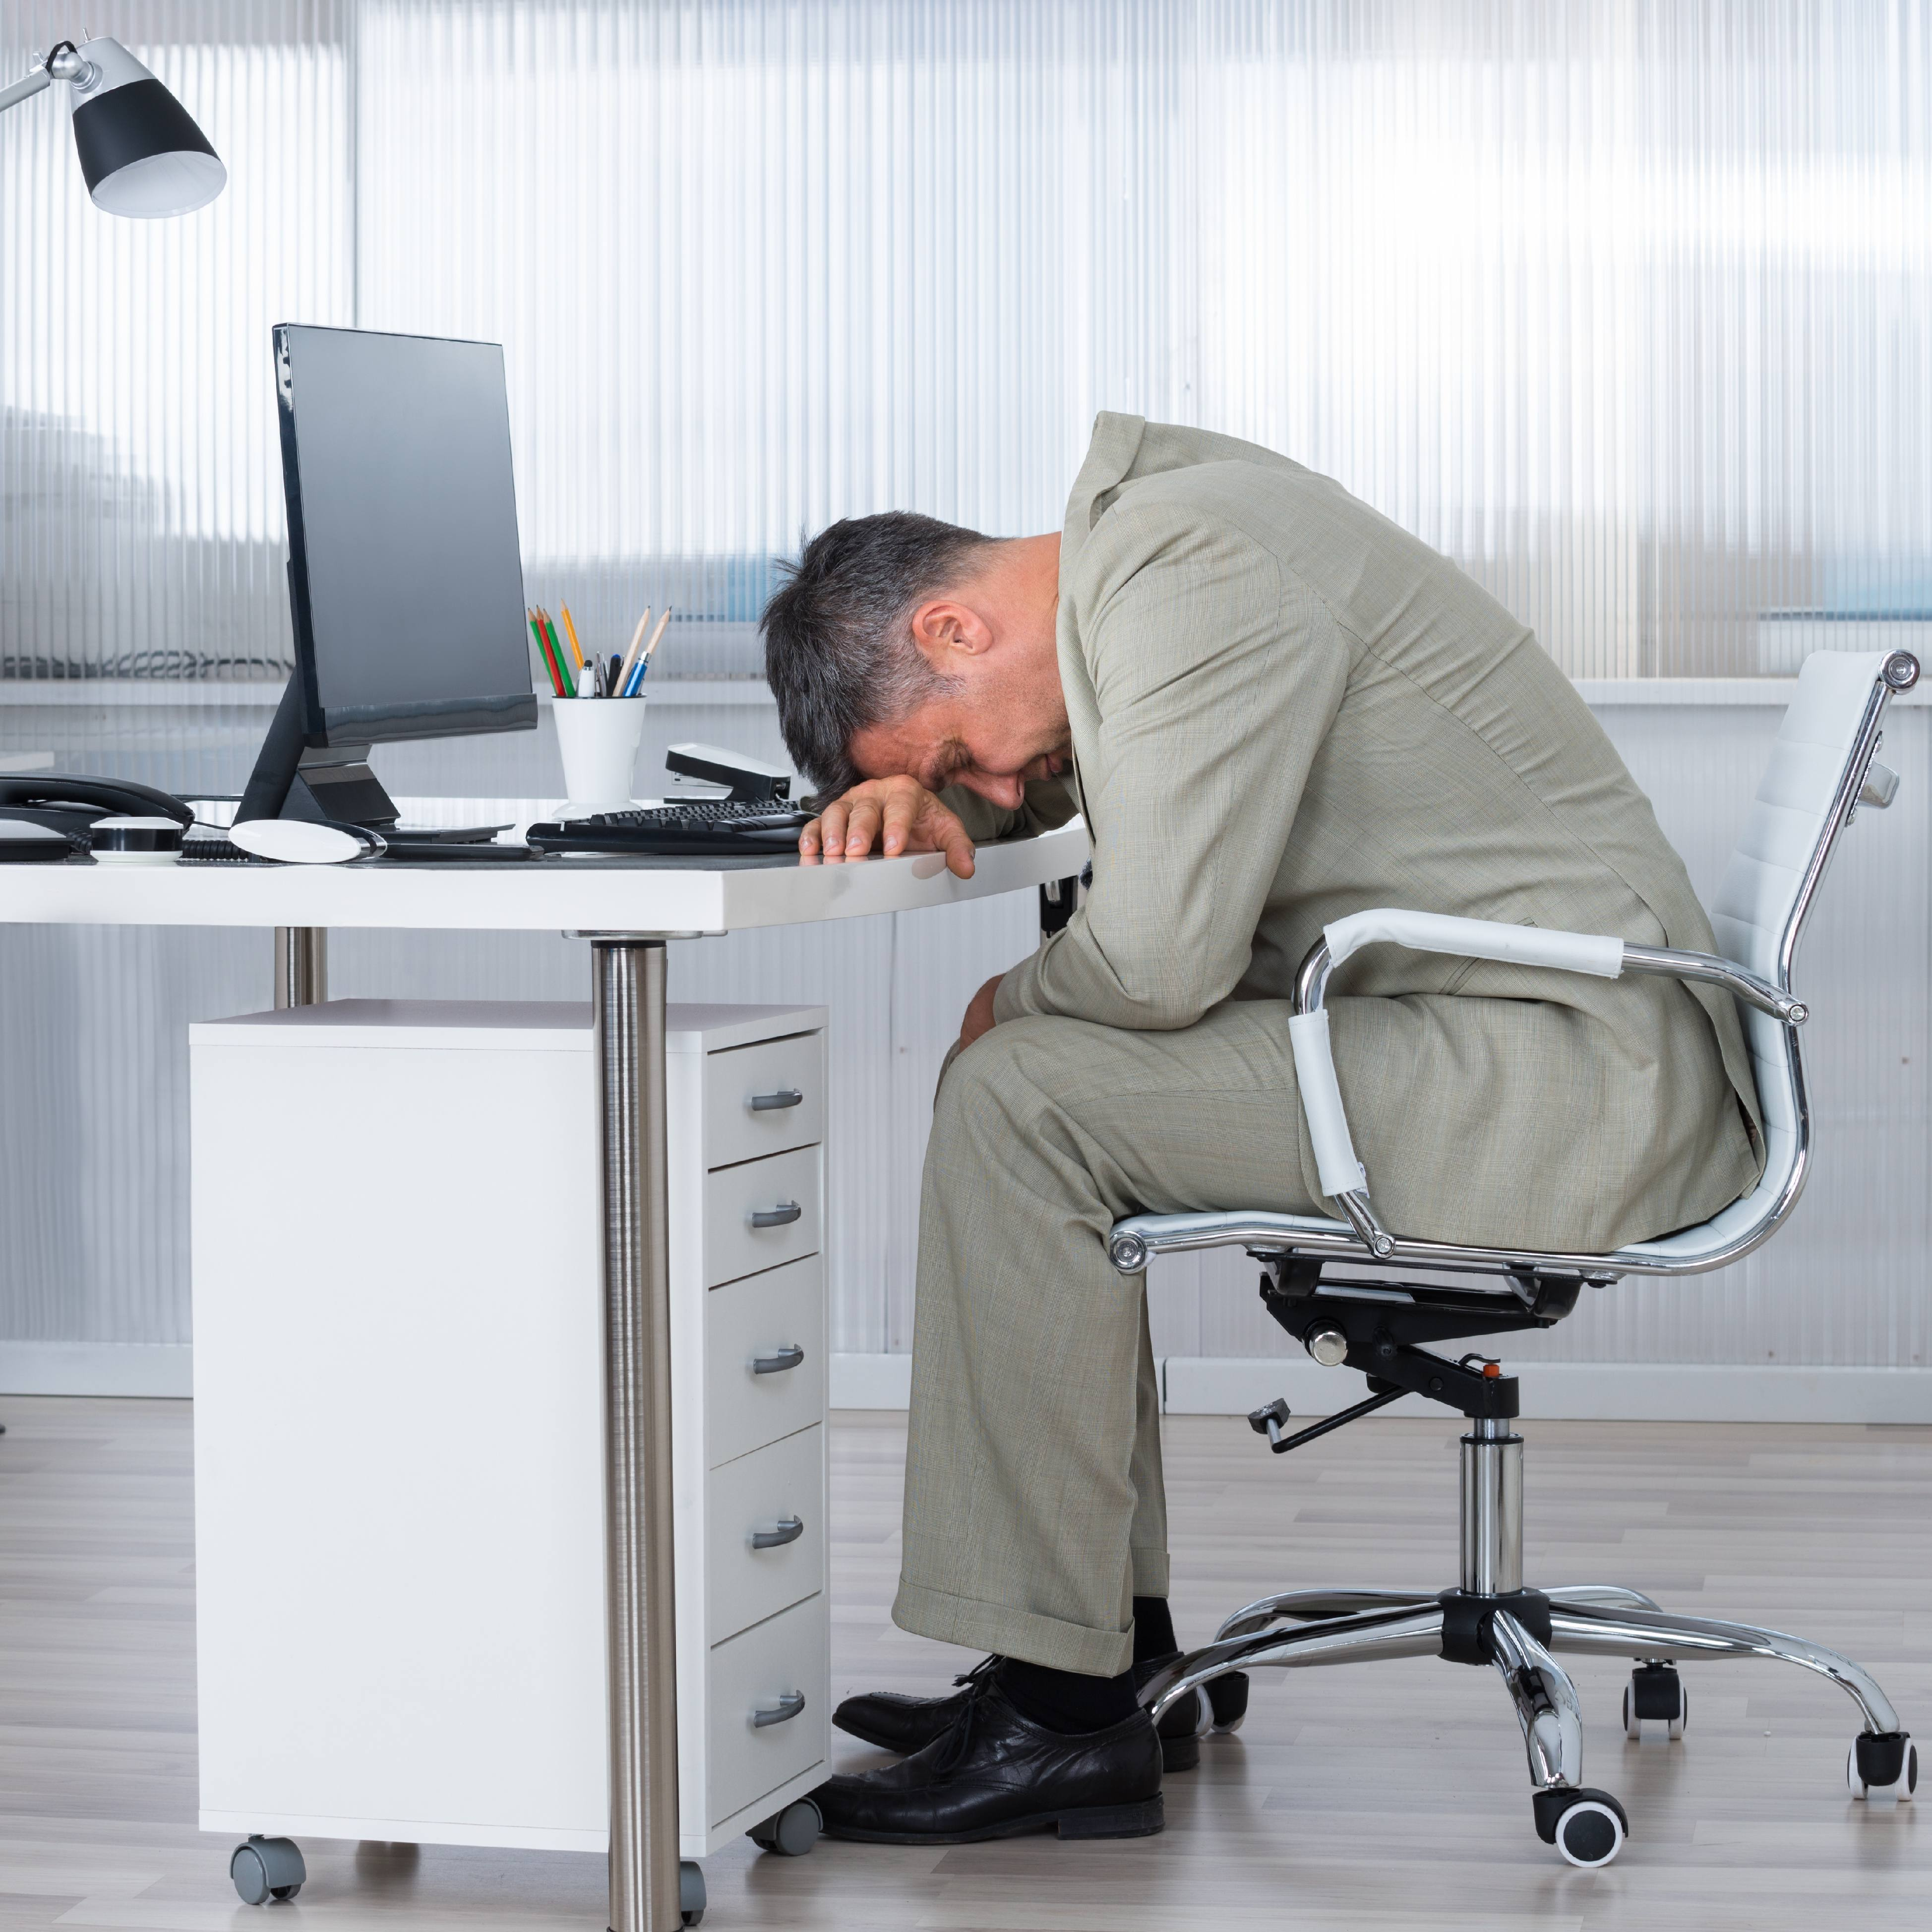 a Caucasian businessman wearing a suit, sitting in a chair, slumped over his desk that has a computer monitor and he looks exhausted, tired and stressed or perhaps asleep